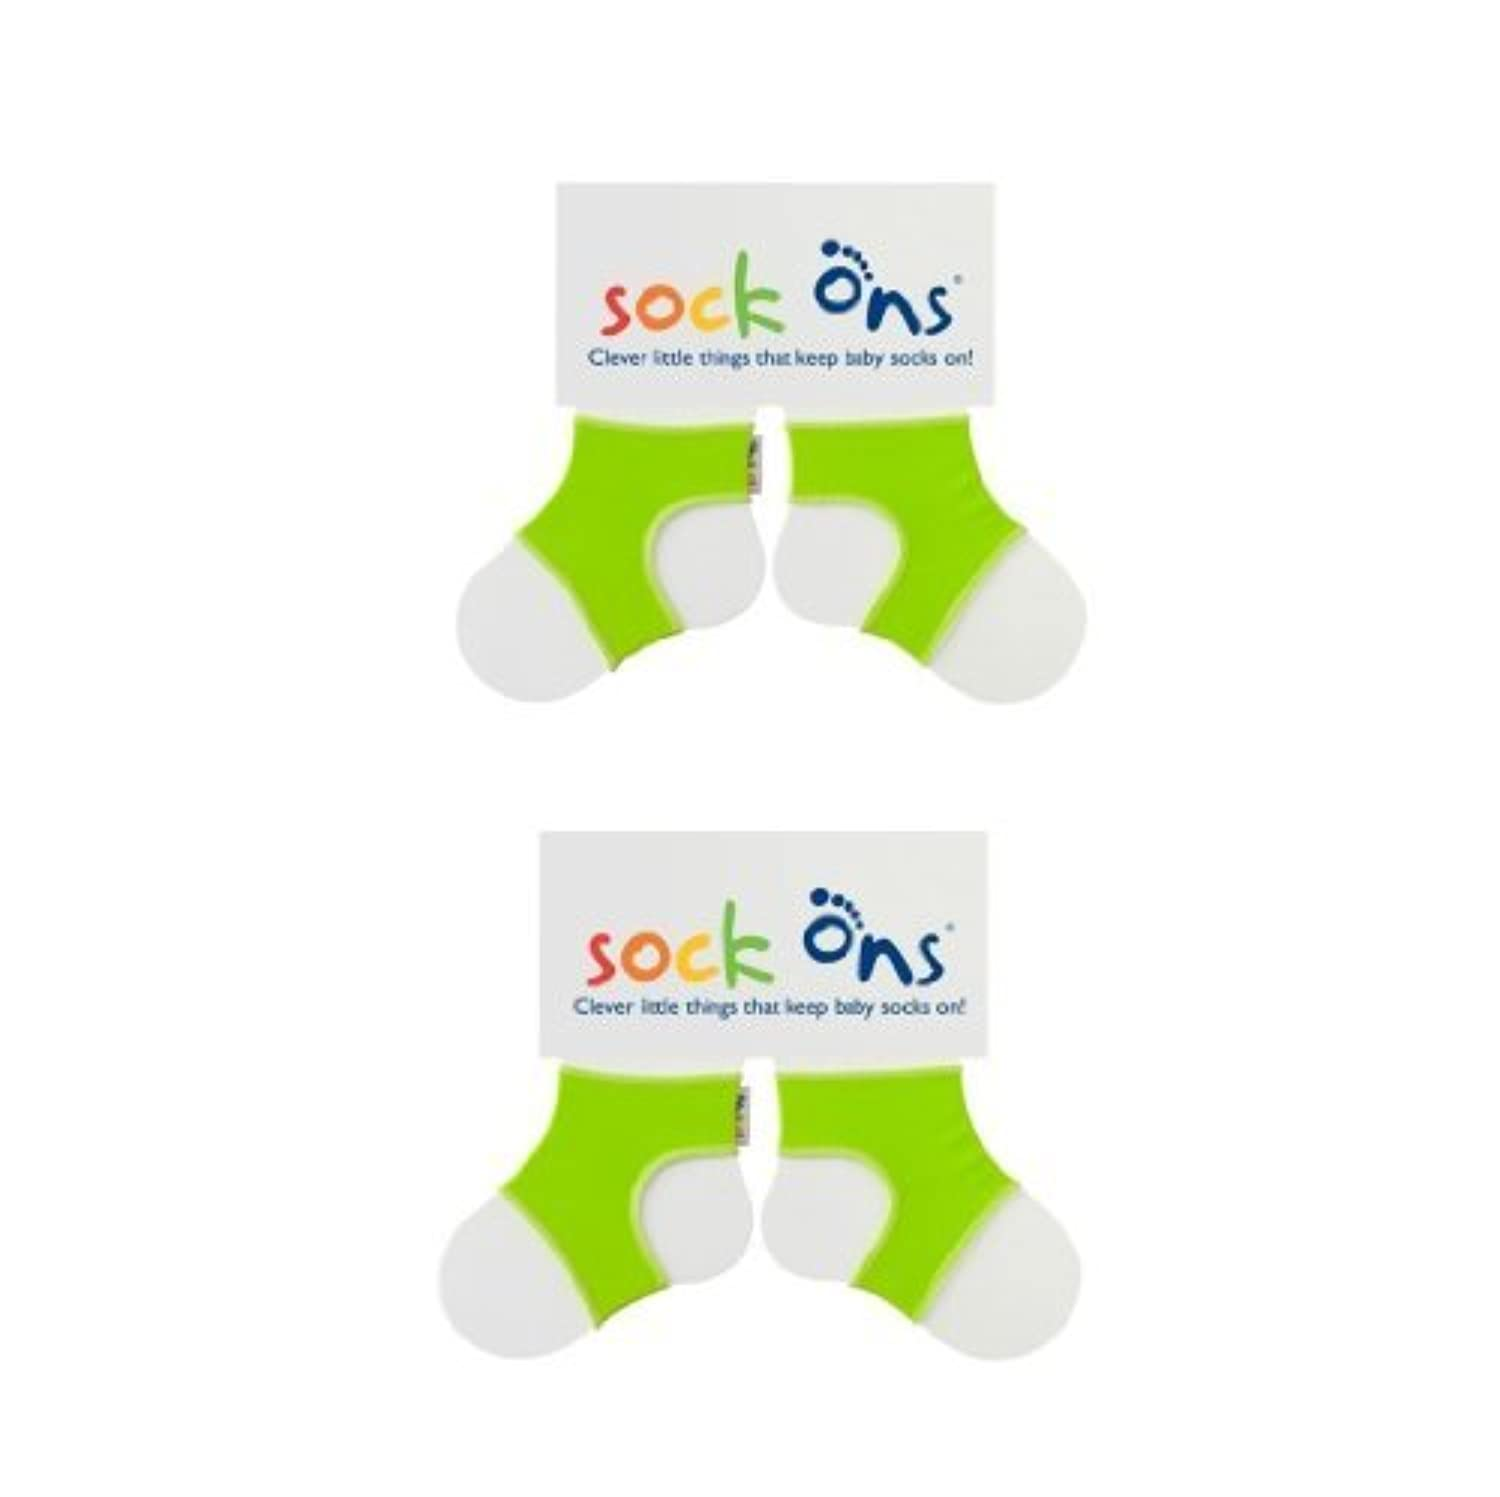 Sock Ons 6-12 Months - TWIN PACK Gift Wrap Available (Lime Green Twin Pack) by Sock Ons